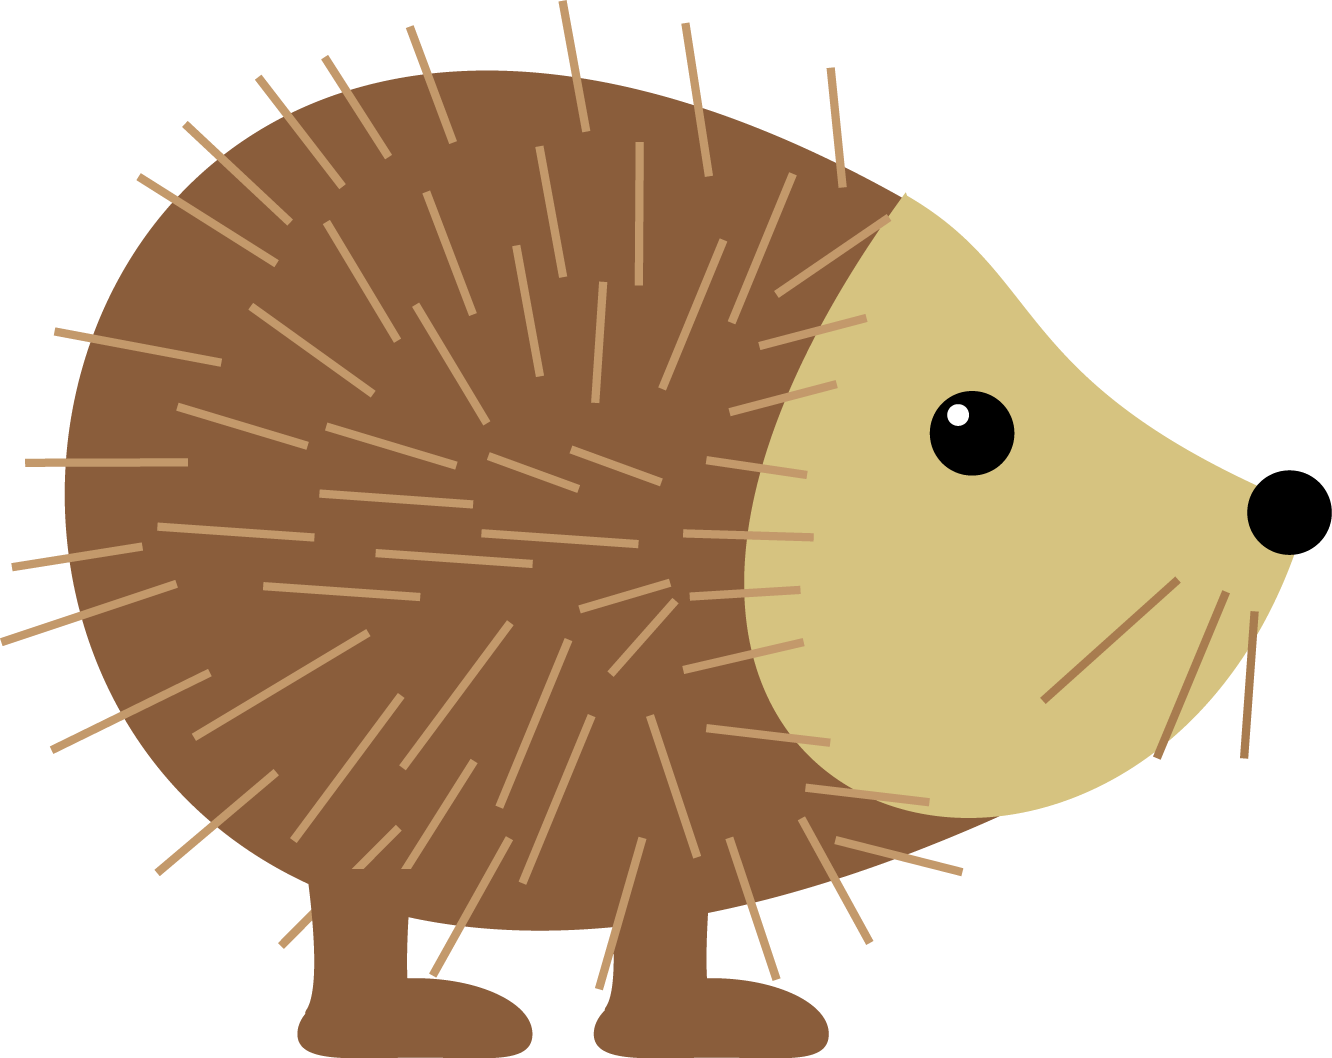 Pin by steffany hernandez. Hedgehog clipart erizo